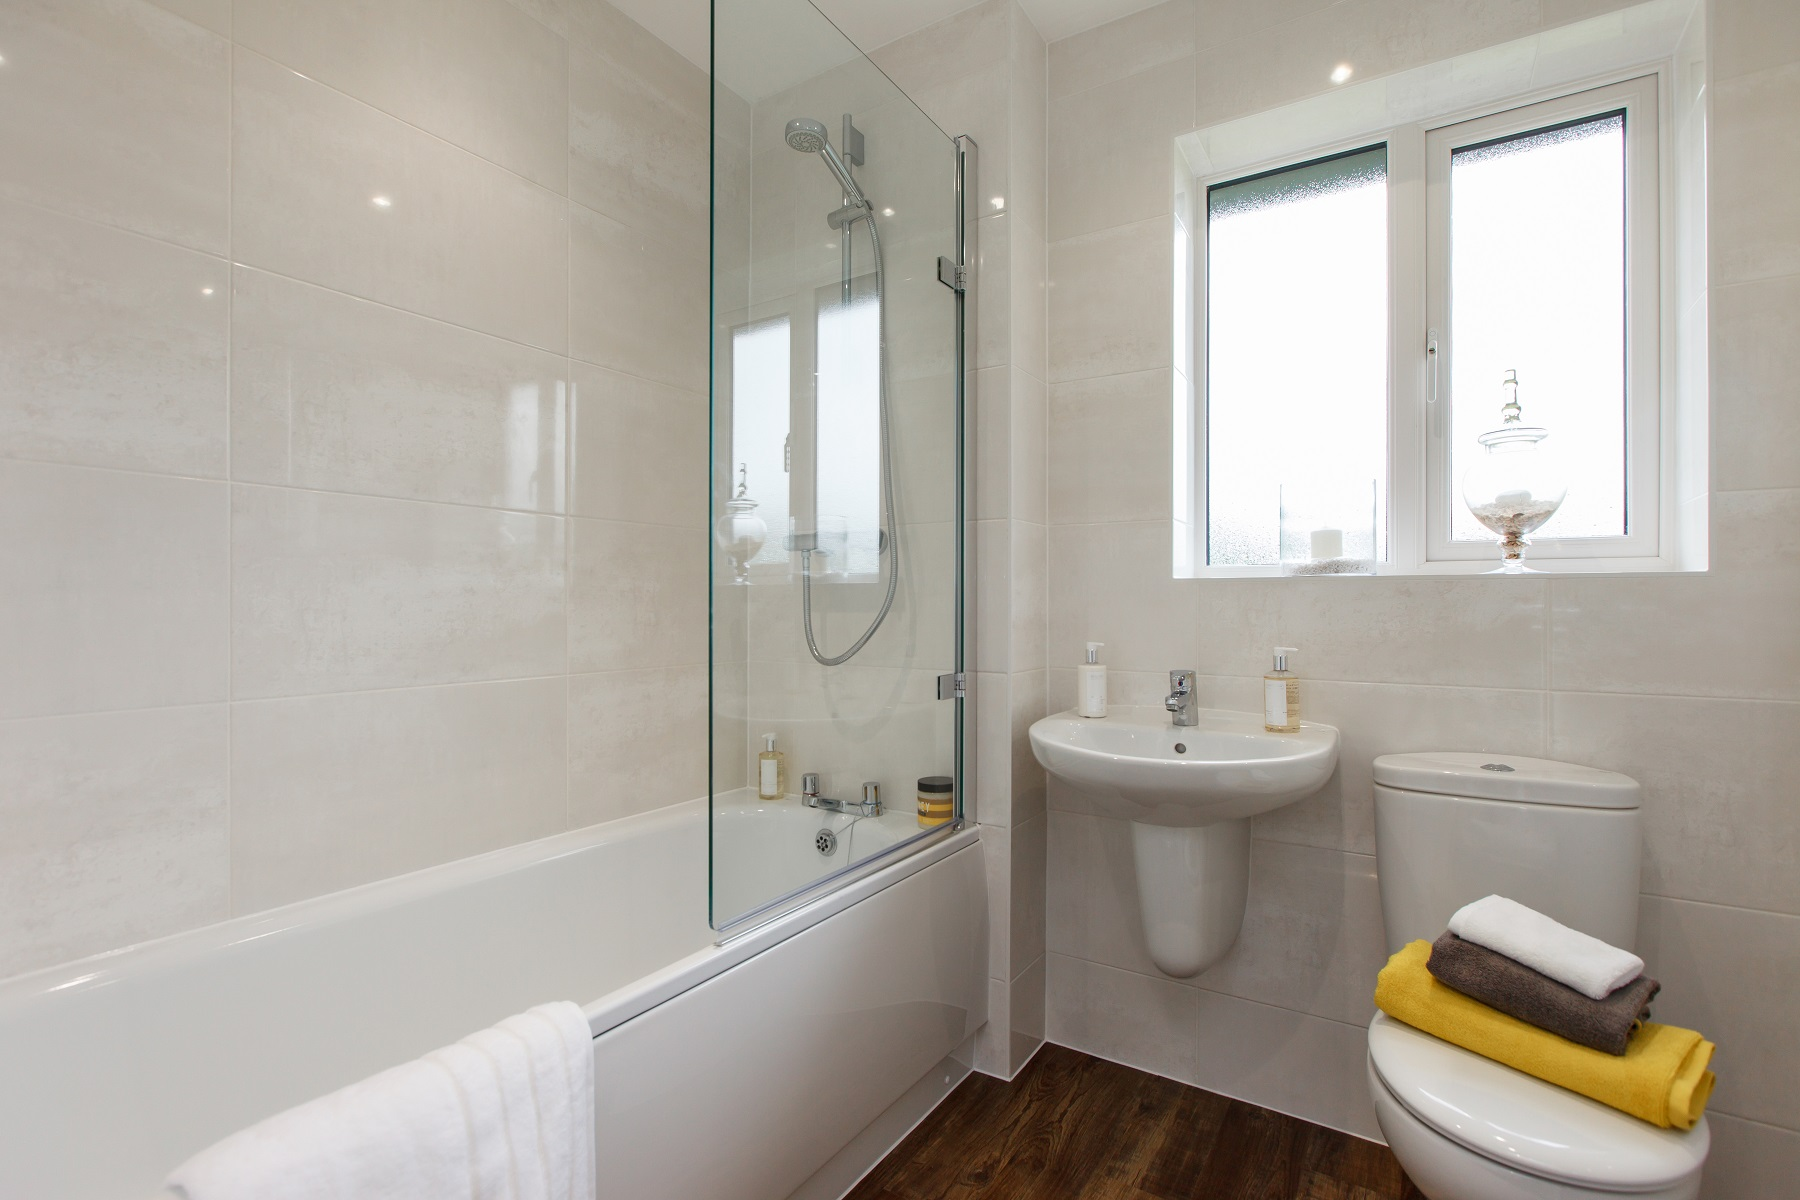 TWSW - Coach House - Bathroom